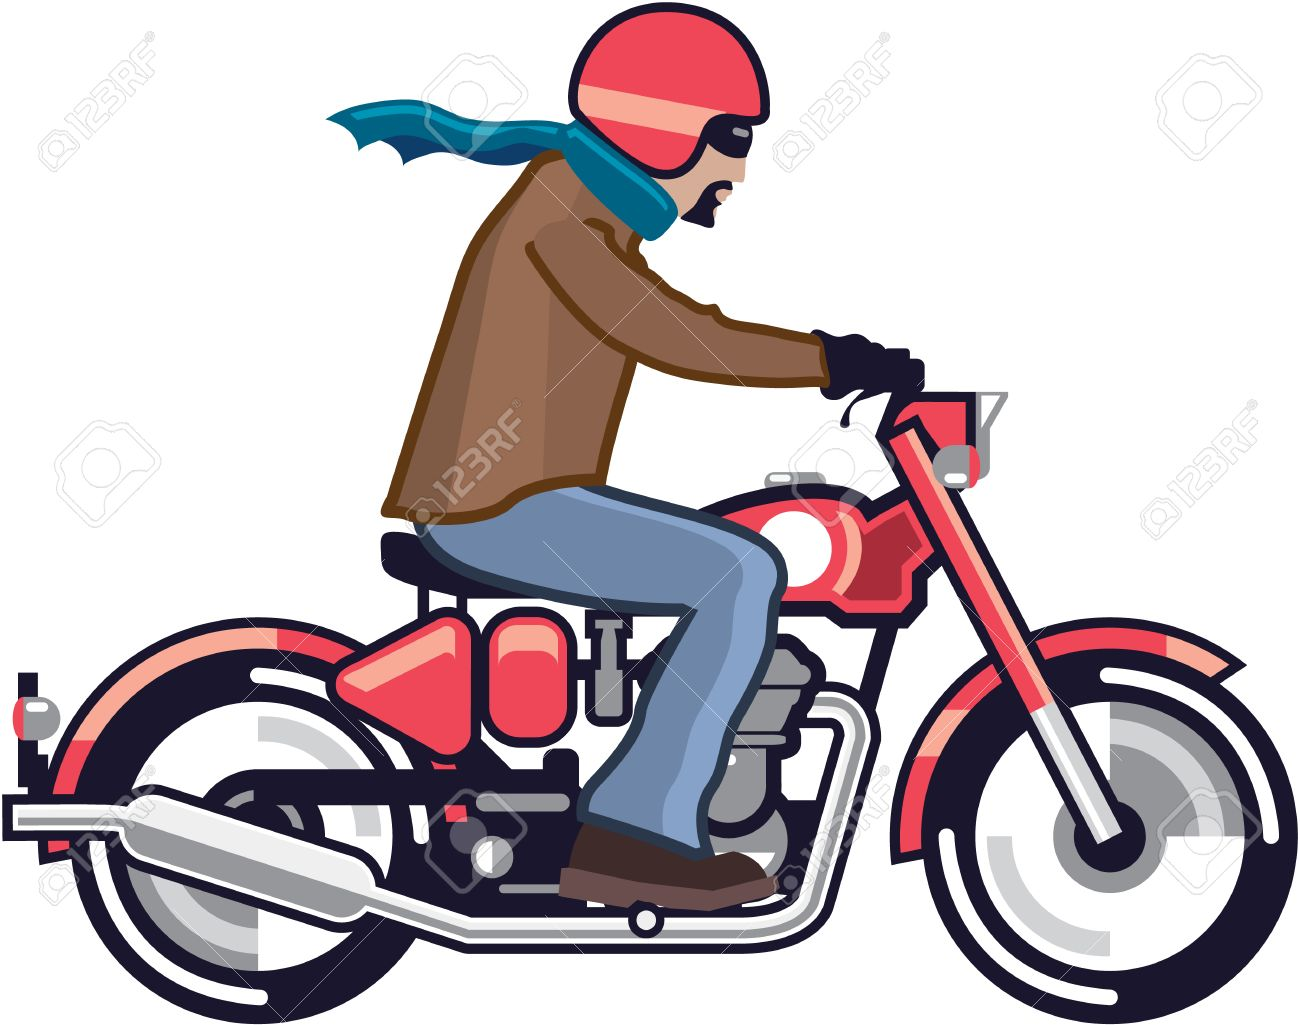 dude on the vintage motorcycle vector illustration clip art royalty rh 123rf com  motorcycle racing images clip art